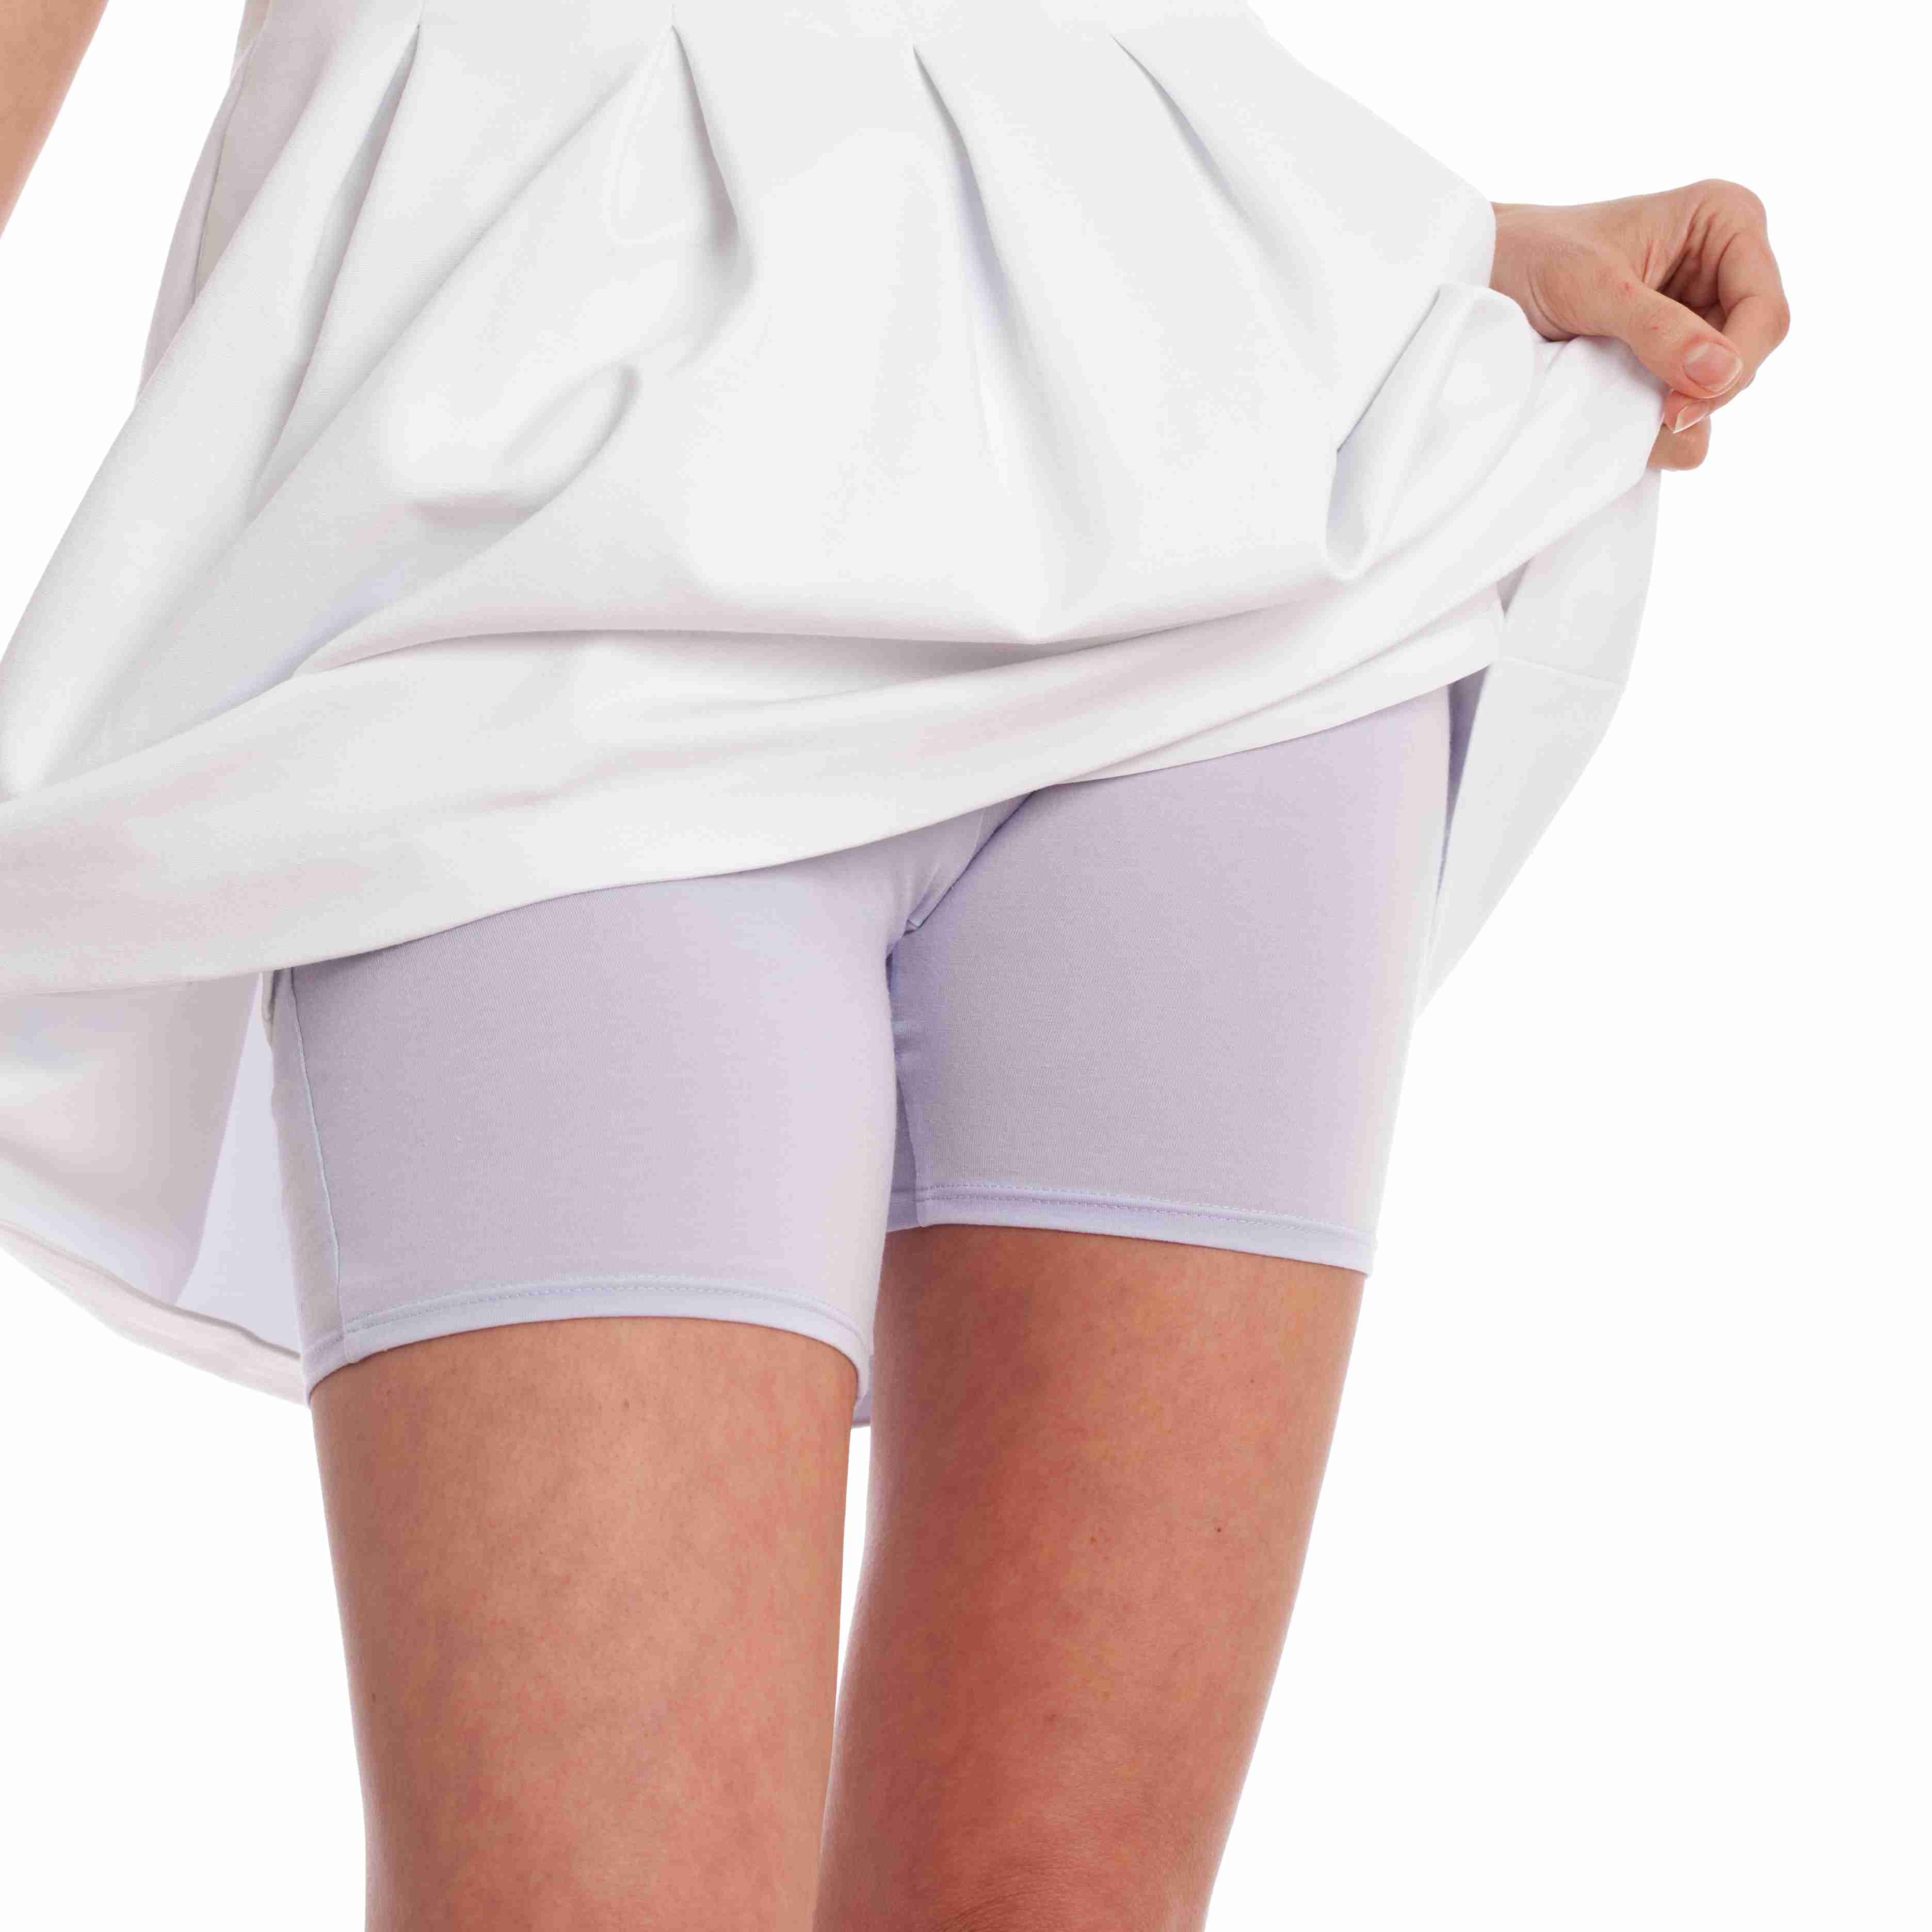 5adf85c66 Shorts to Wear Under Dresses and Skirts